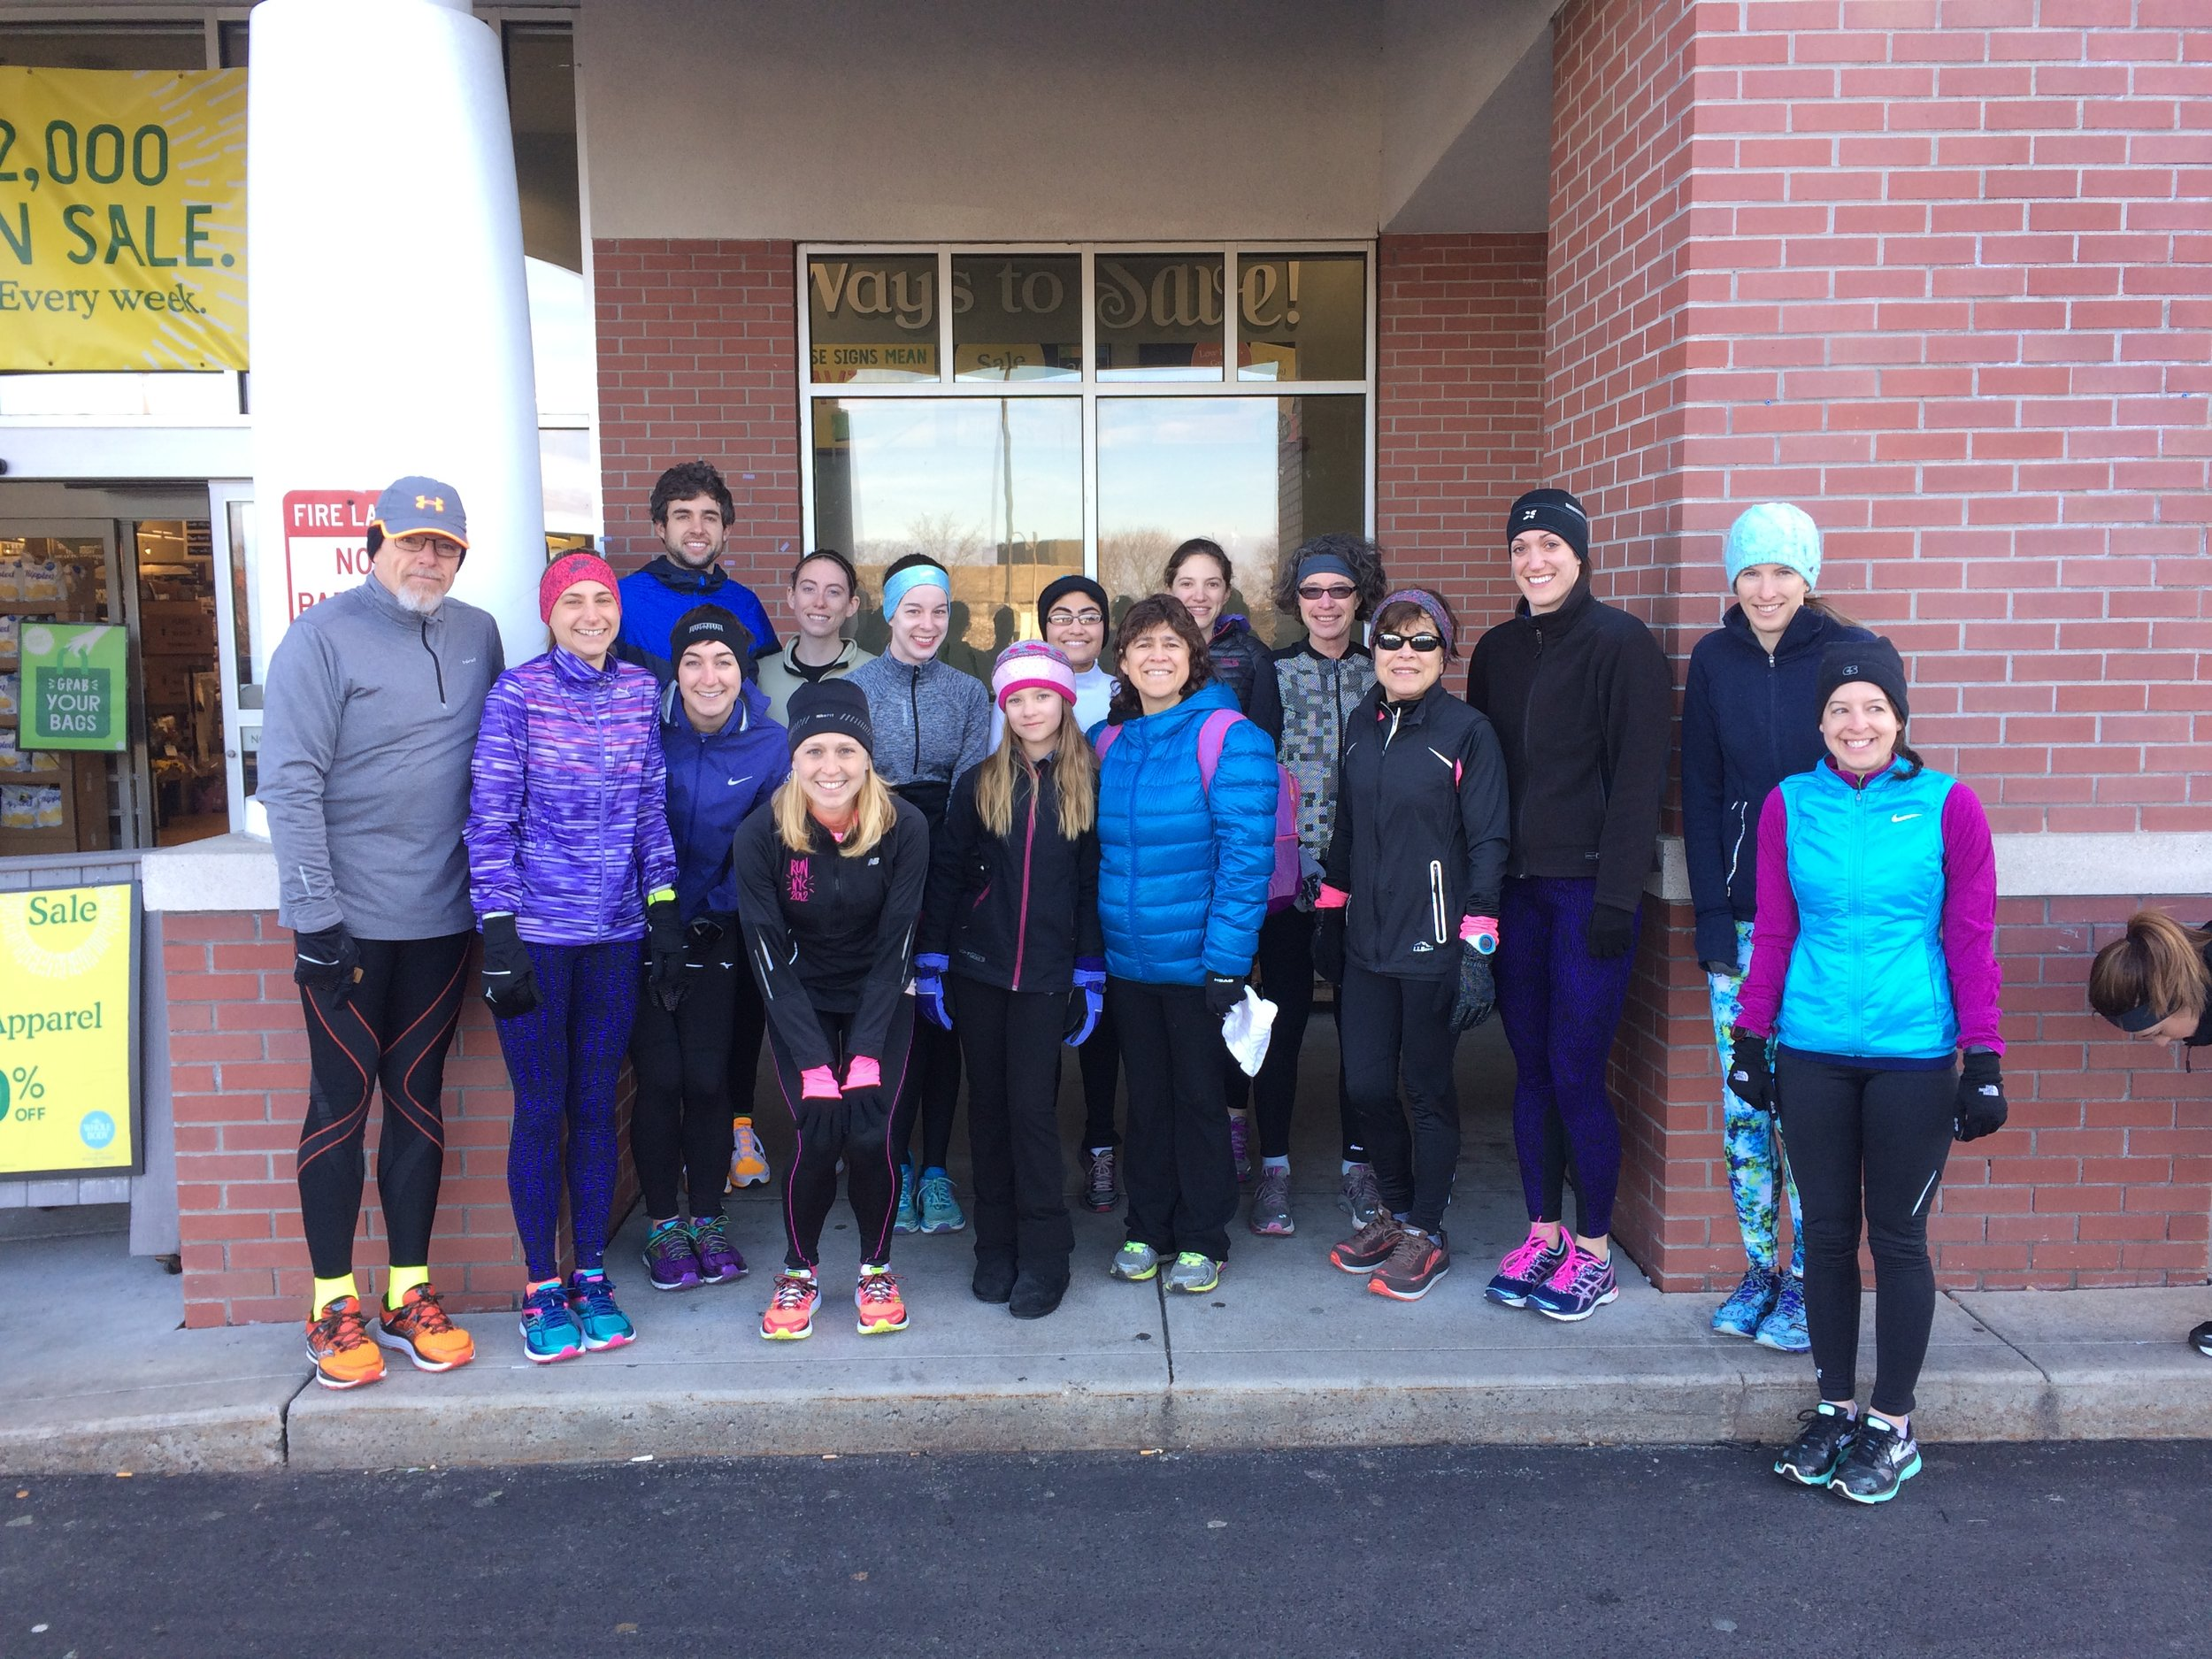 Birthday miles with Whole Foods Run Club in Providence